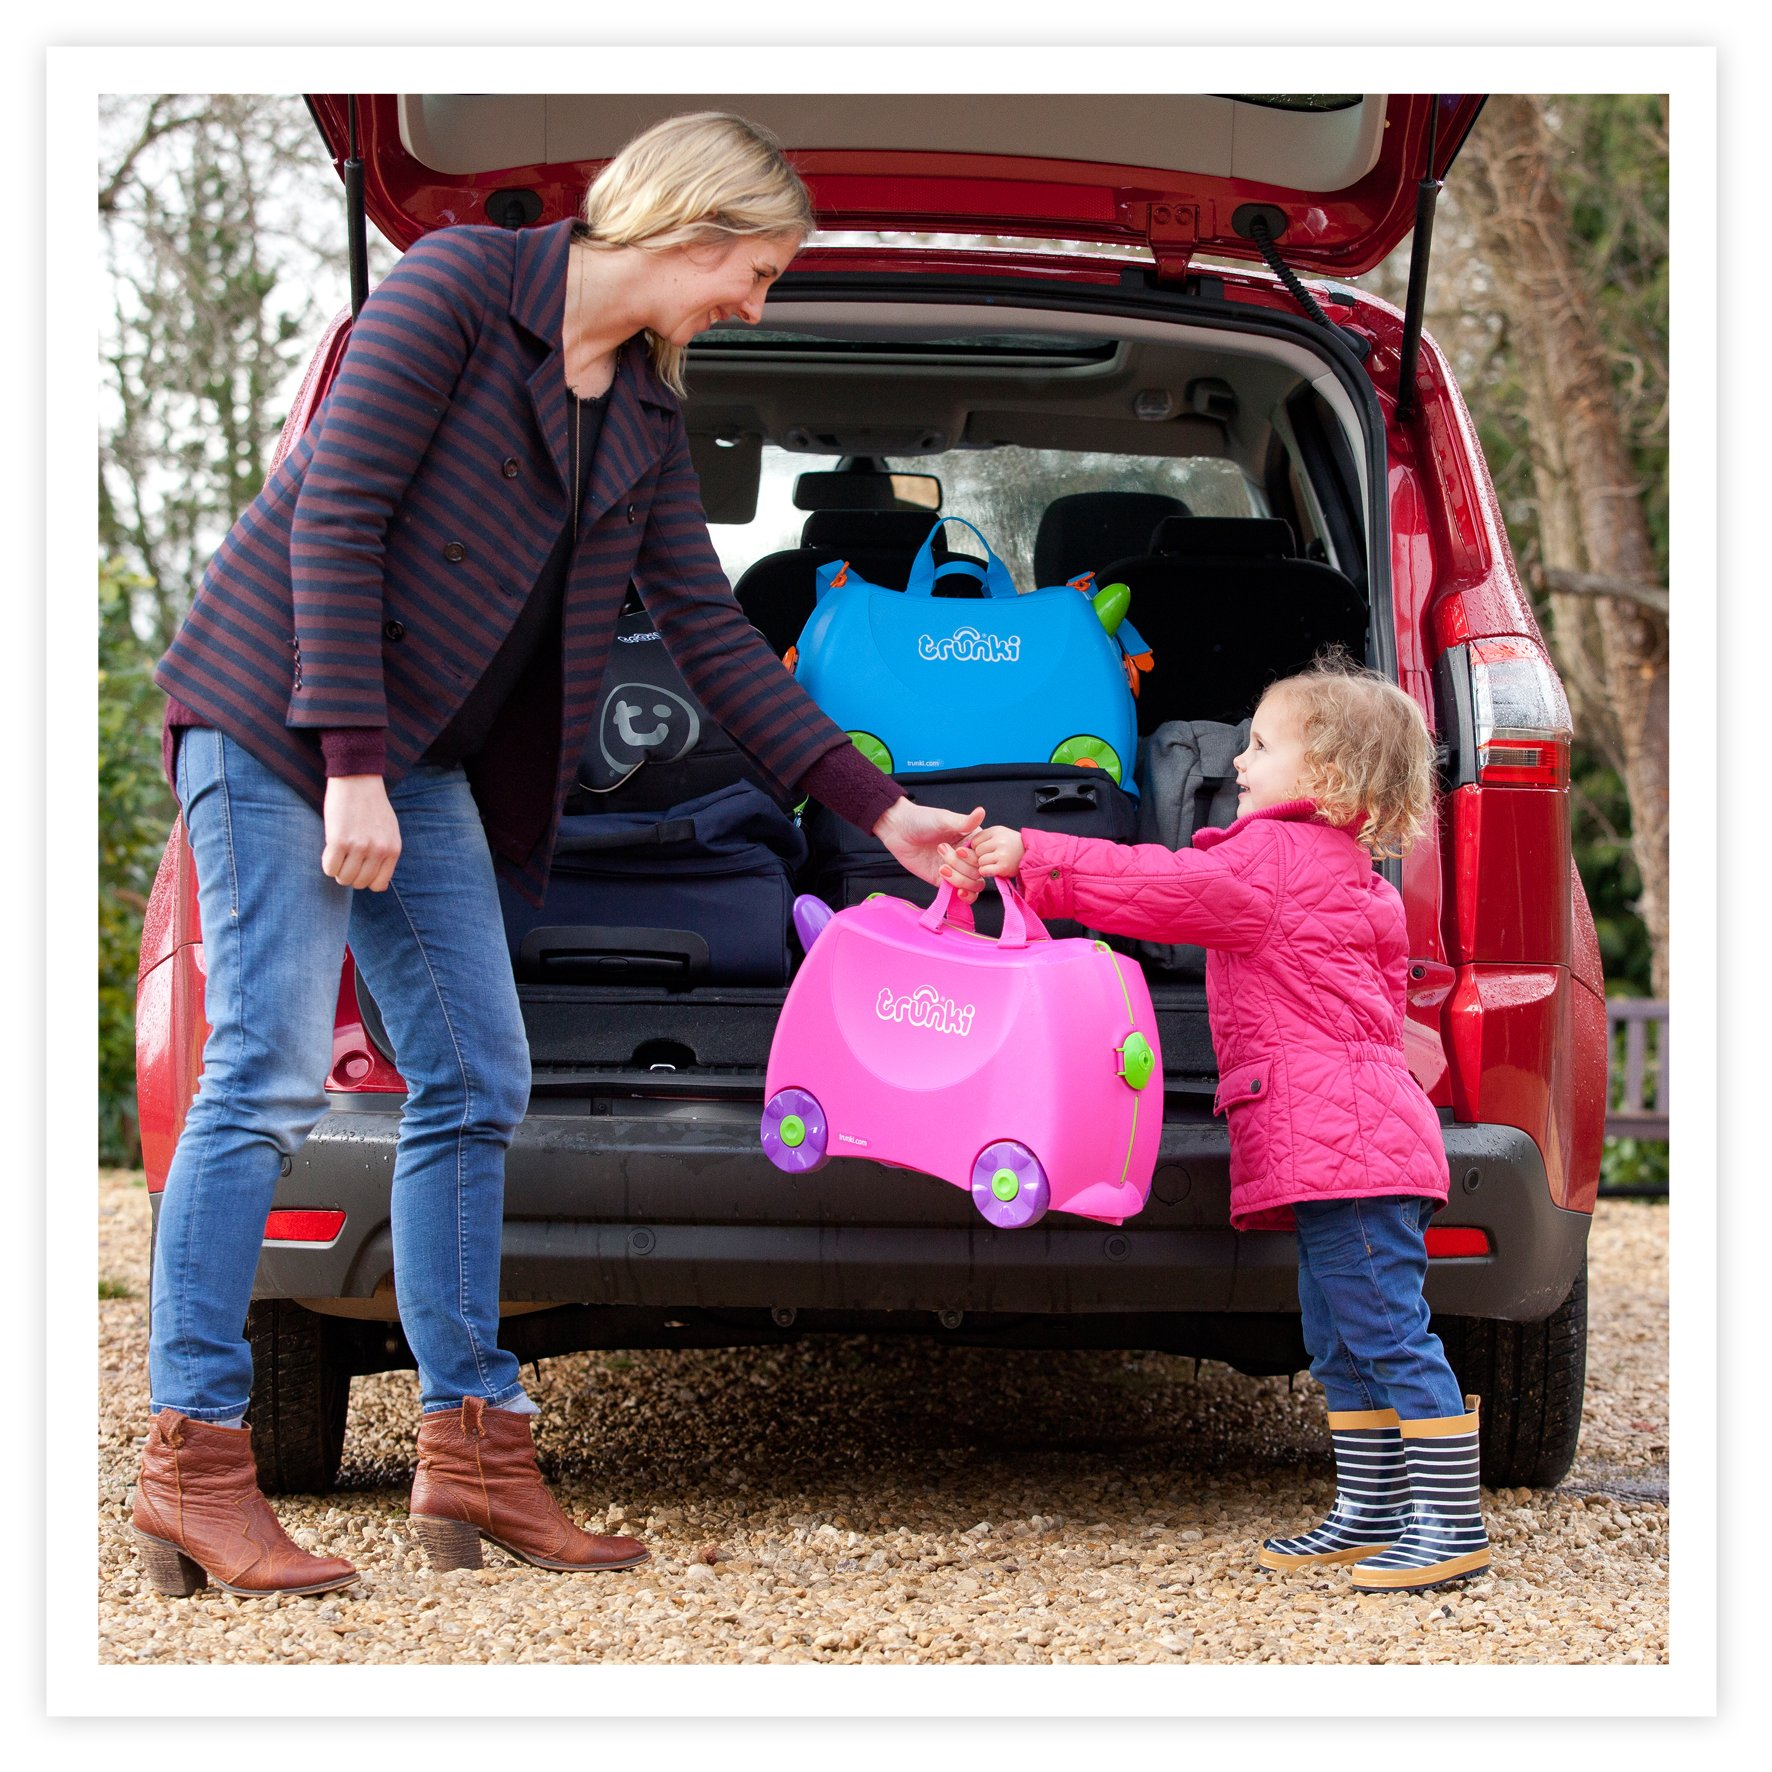 Trunki Original Kids Ride-On Suitcase and Carry-On Luggage - Terrance (Blue) by Trunki (Image #18)